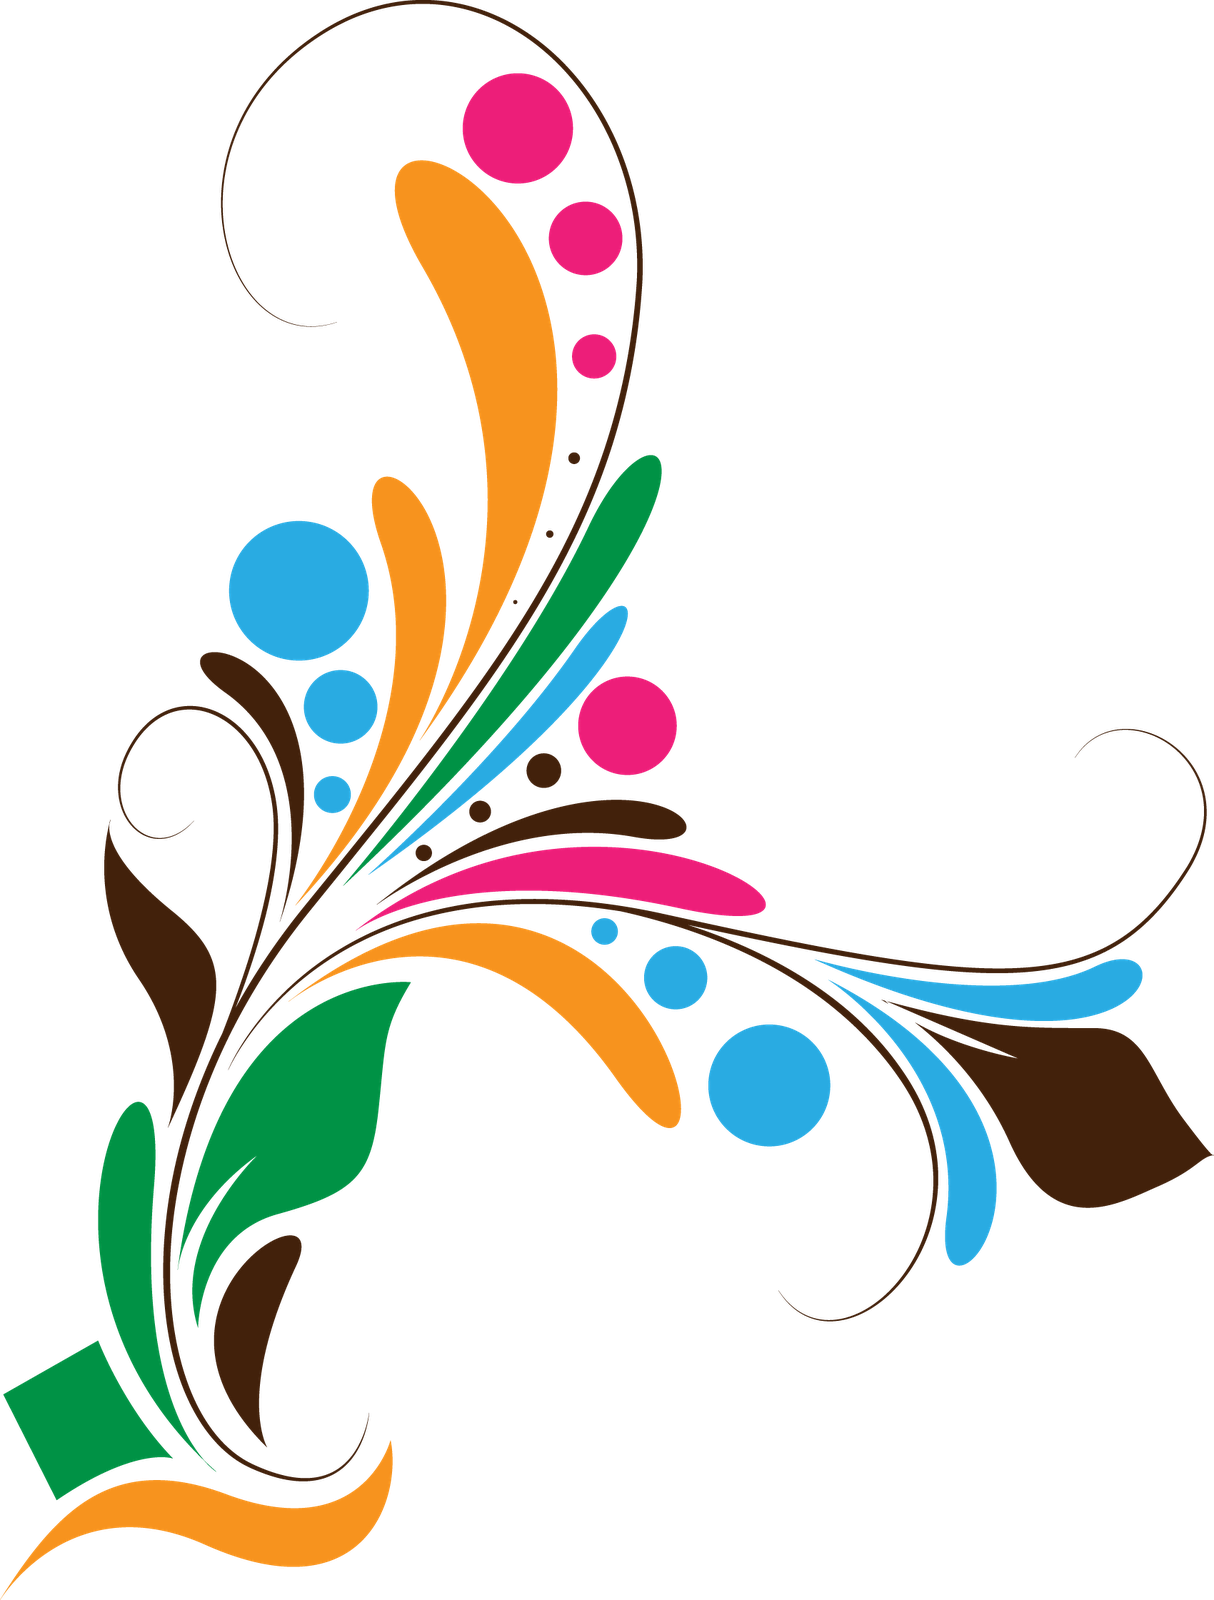 Floral design backgrounds borders. Vector images png